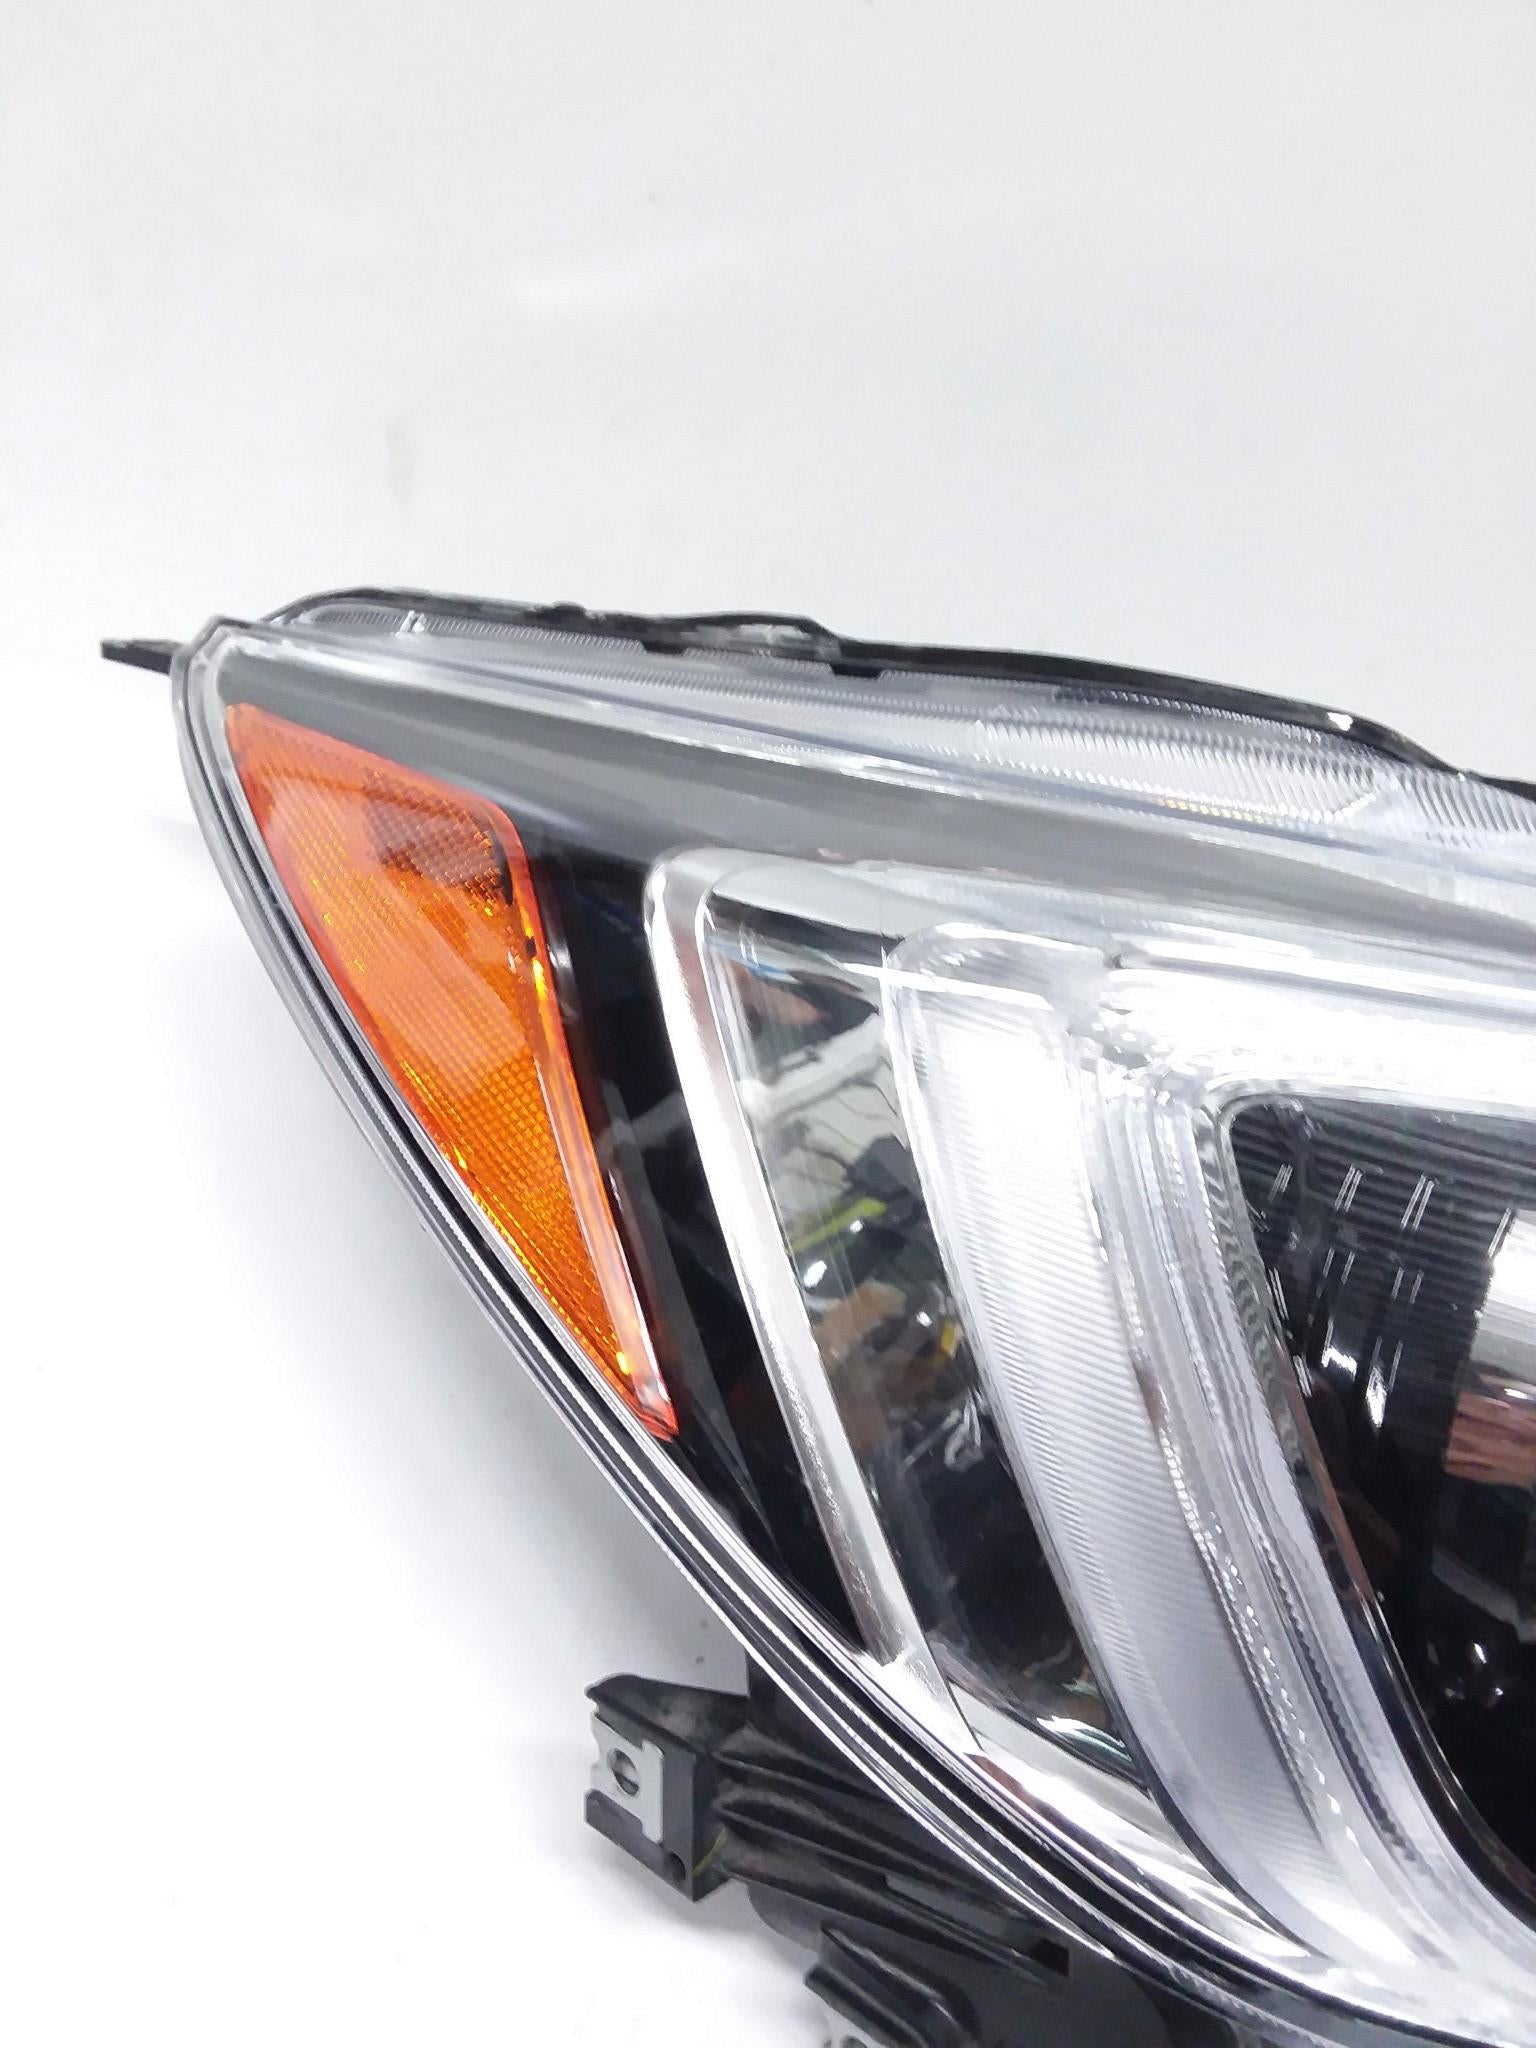 2015 2016 2017 SUBARU LEGACY OUTBACK RIGHT PASS SIDE HEADLIGHT XENON HID OEM - Click Receive Auto Parts